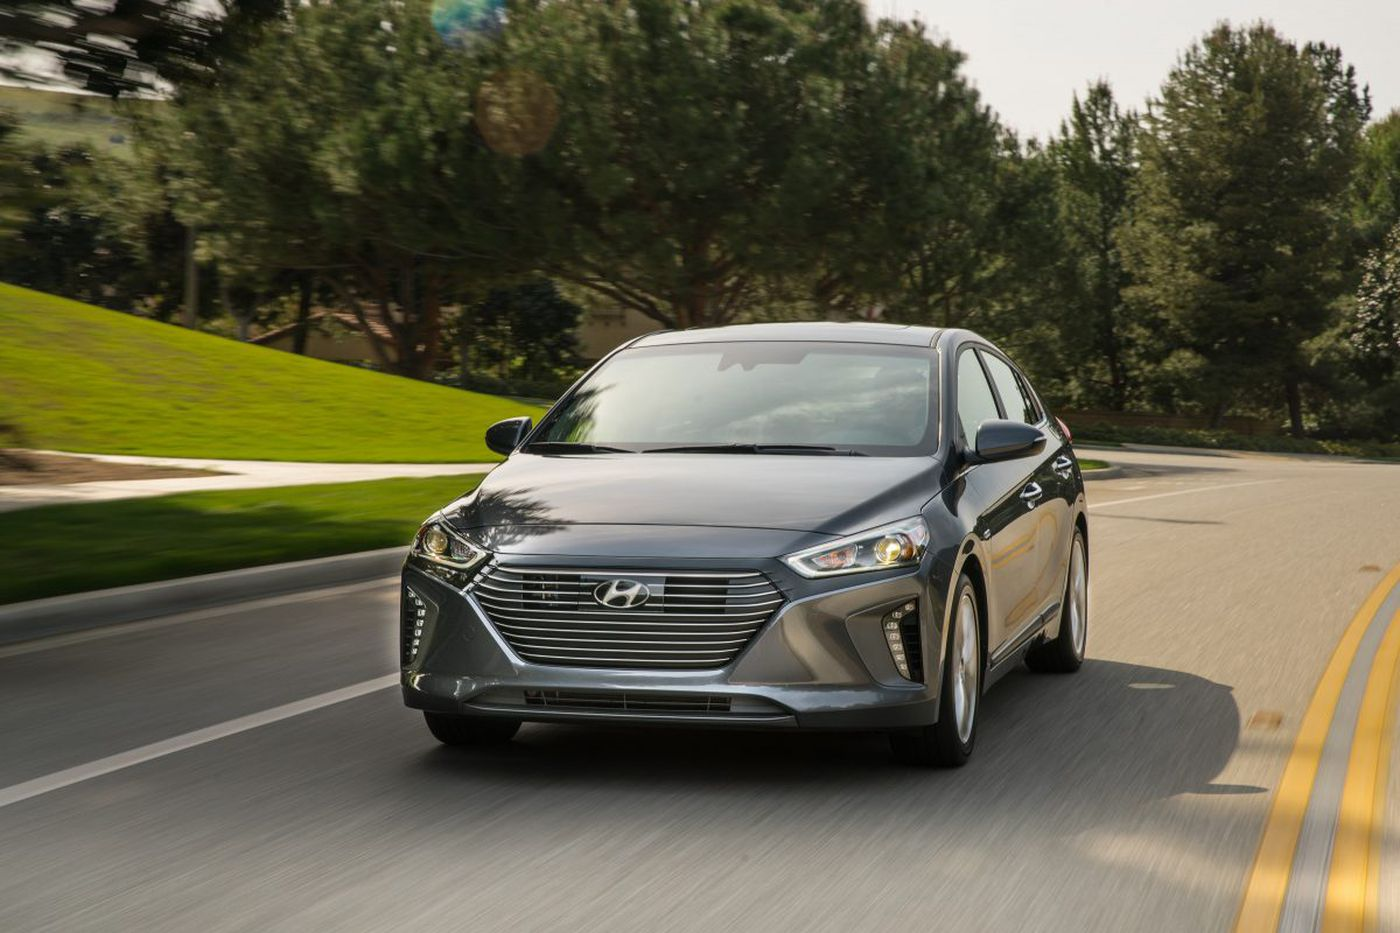 Hyundai has come a long way with its outstanding Ioniq Hybrid